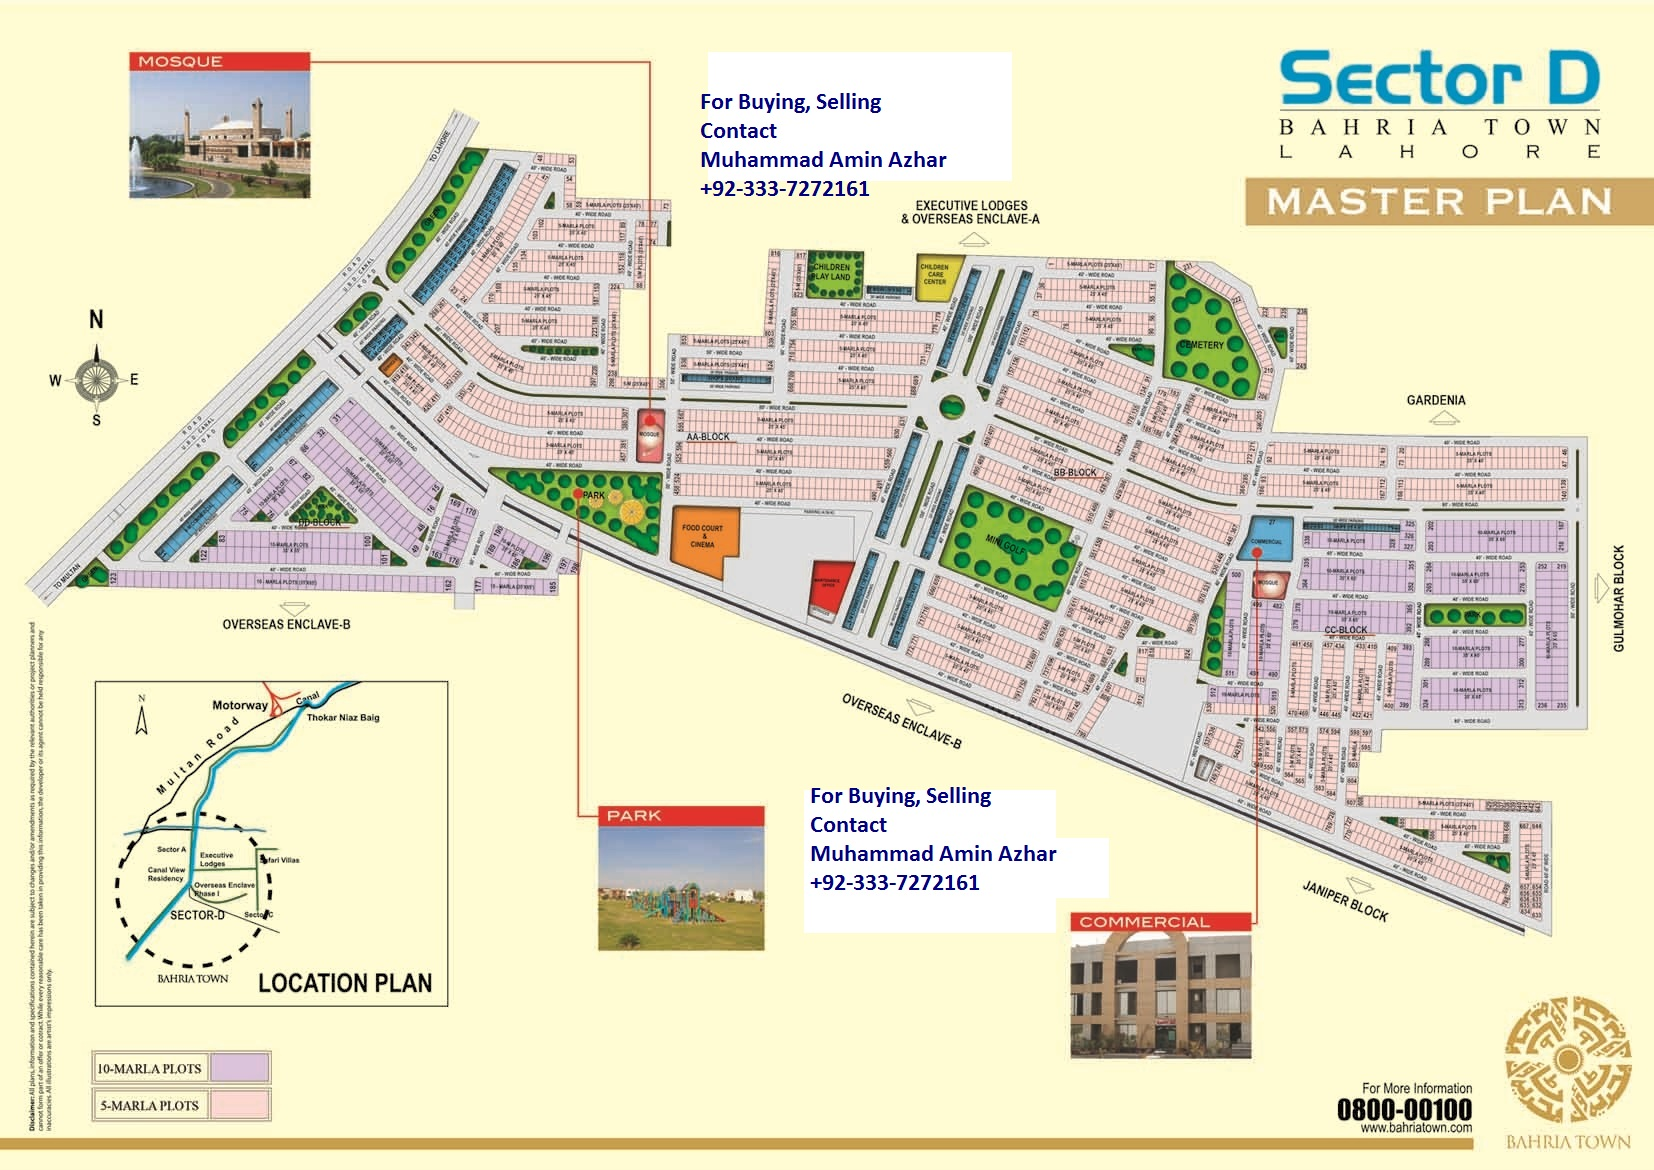 Sector D Map of Bahria Town Lahore Sector D